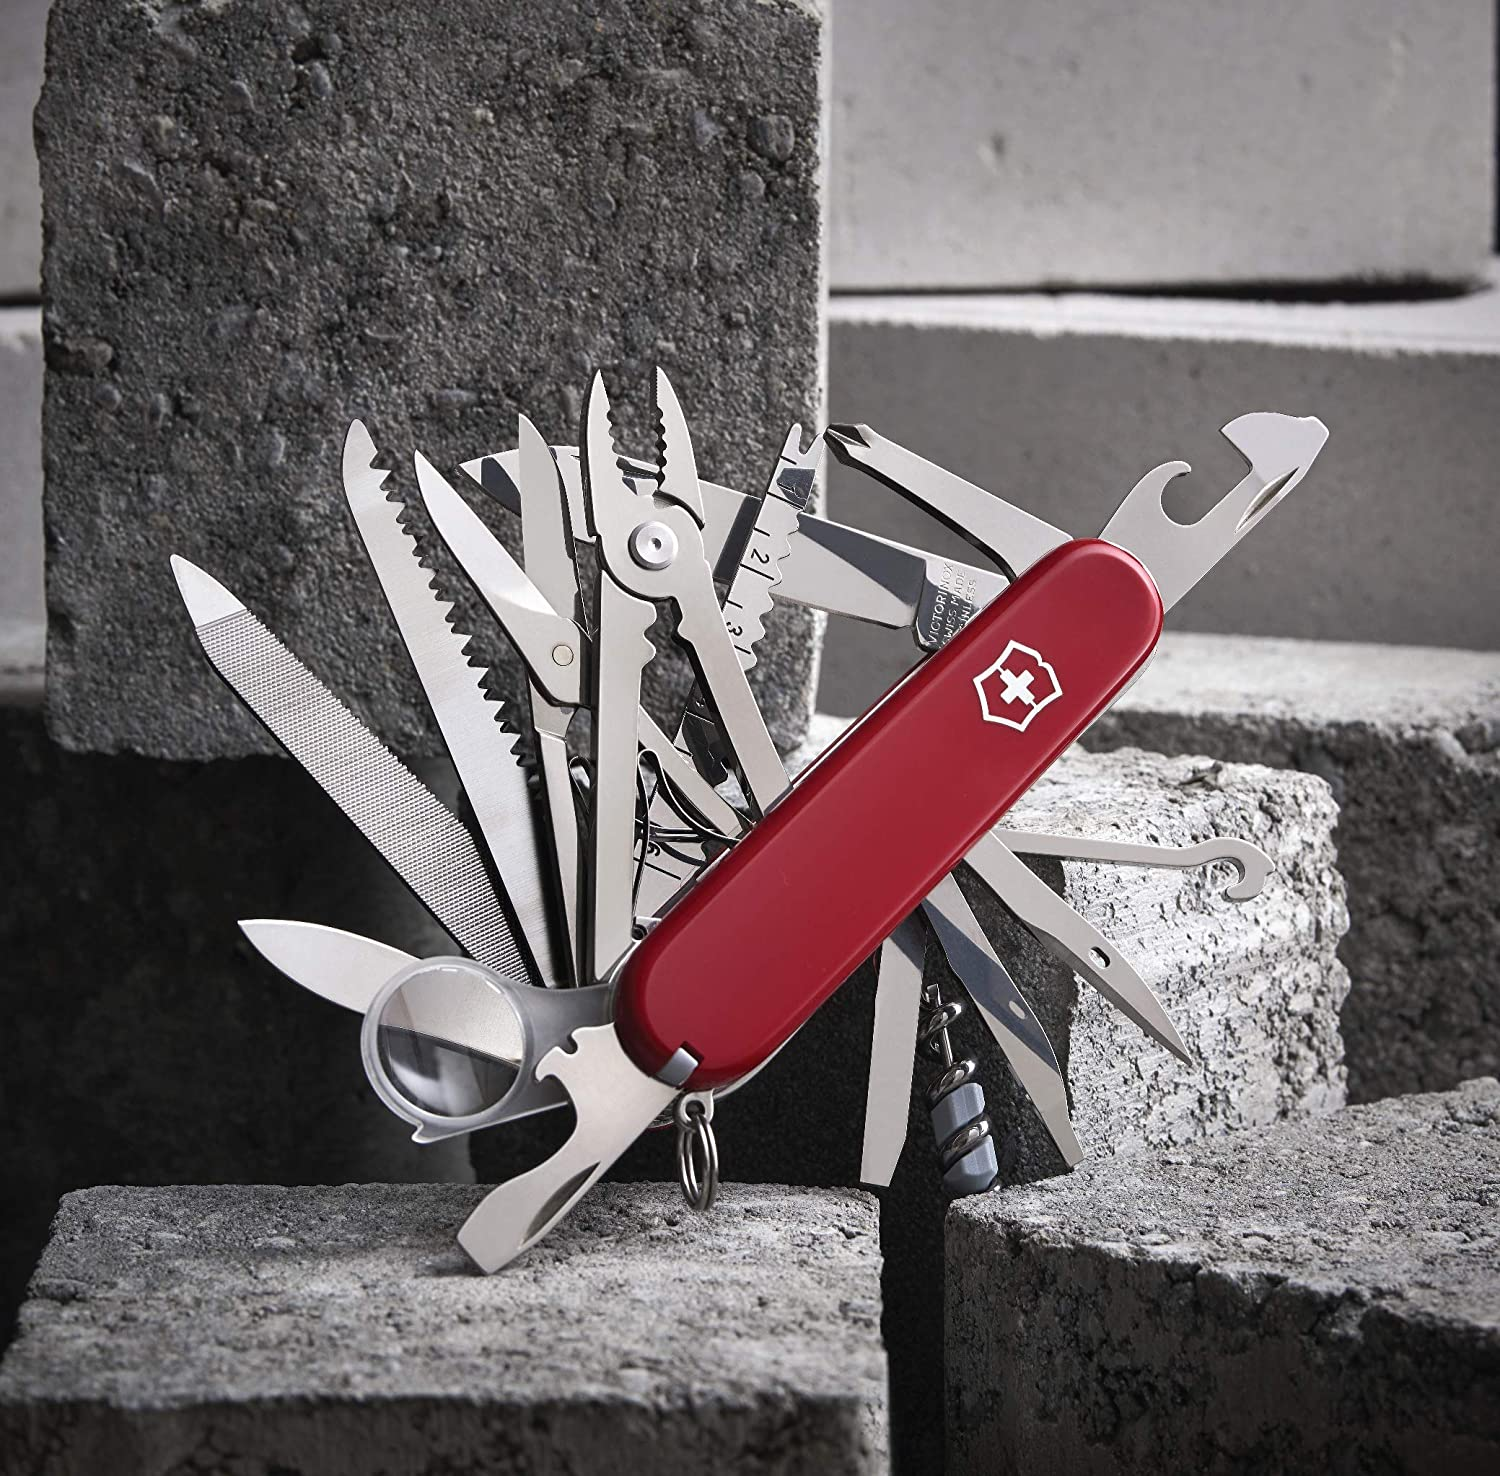 Swiss-Army-Knife-Post-Image